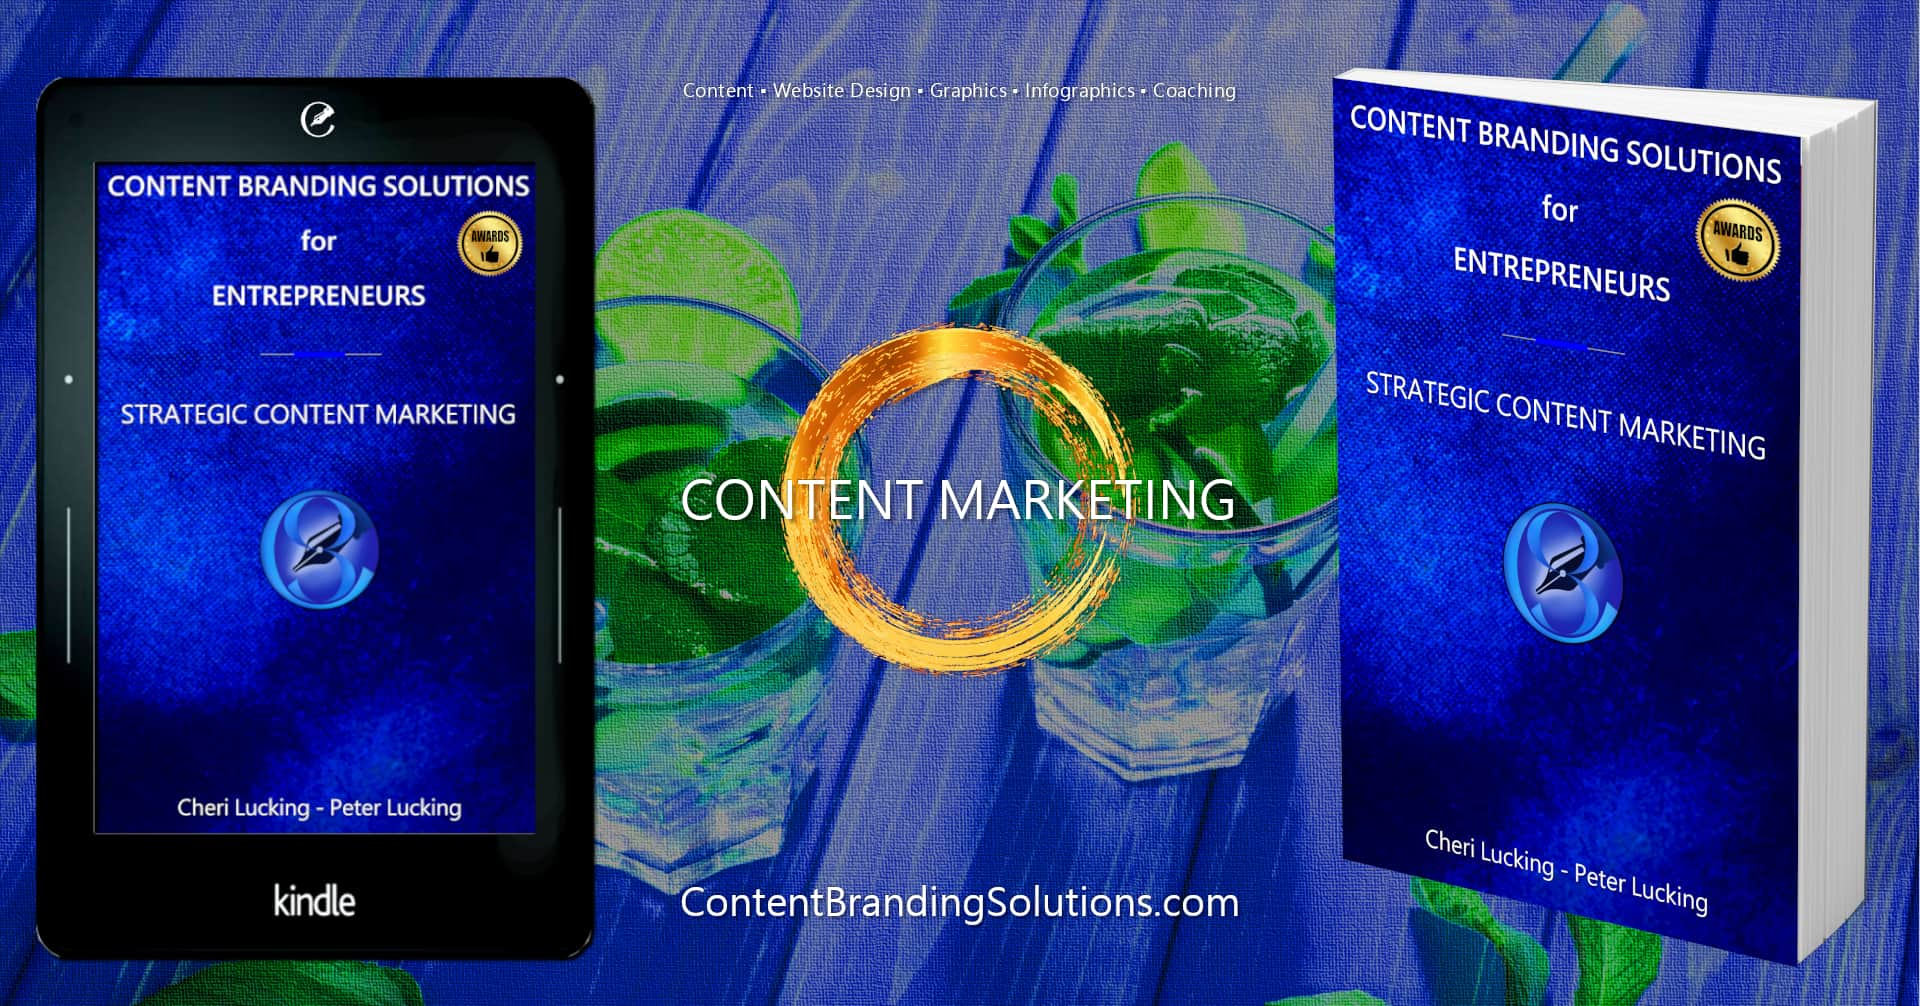 Content Branding Solutions for Entrepreneurs - Strategic Content Marketing a New Book, eBook, Kindle by Cheri Lucking and Peter Lucking –Available on amazon